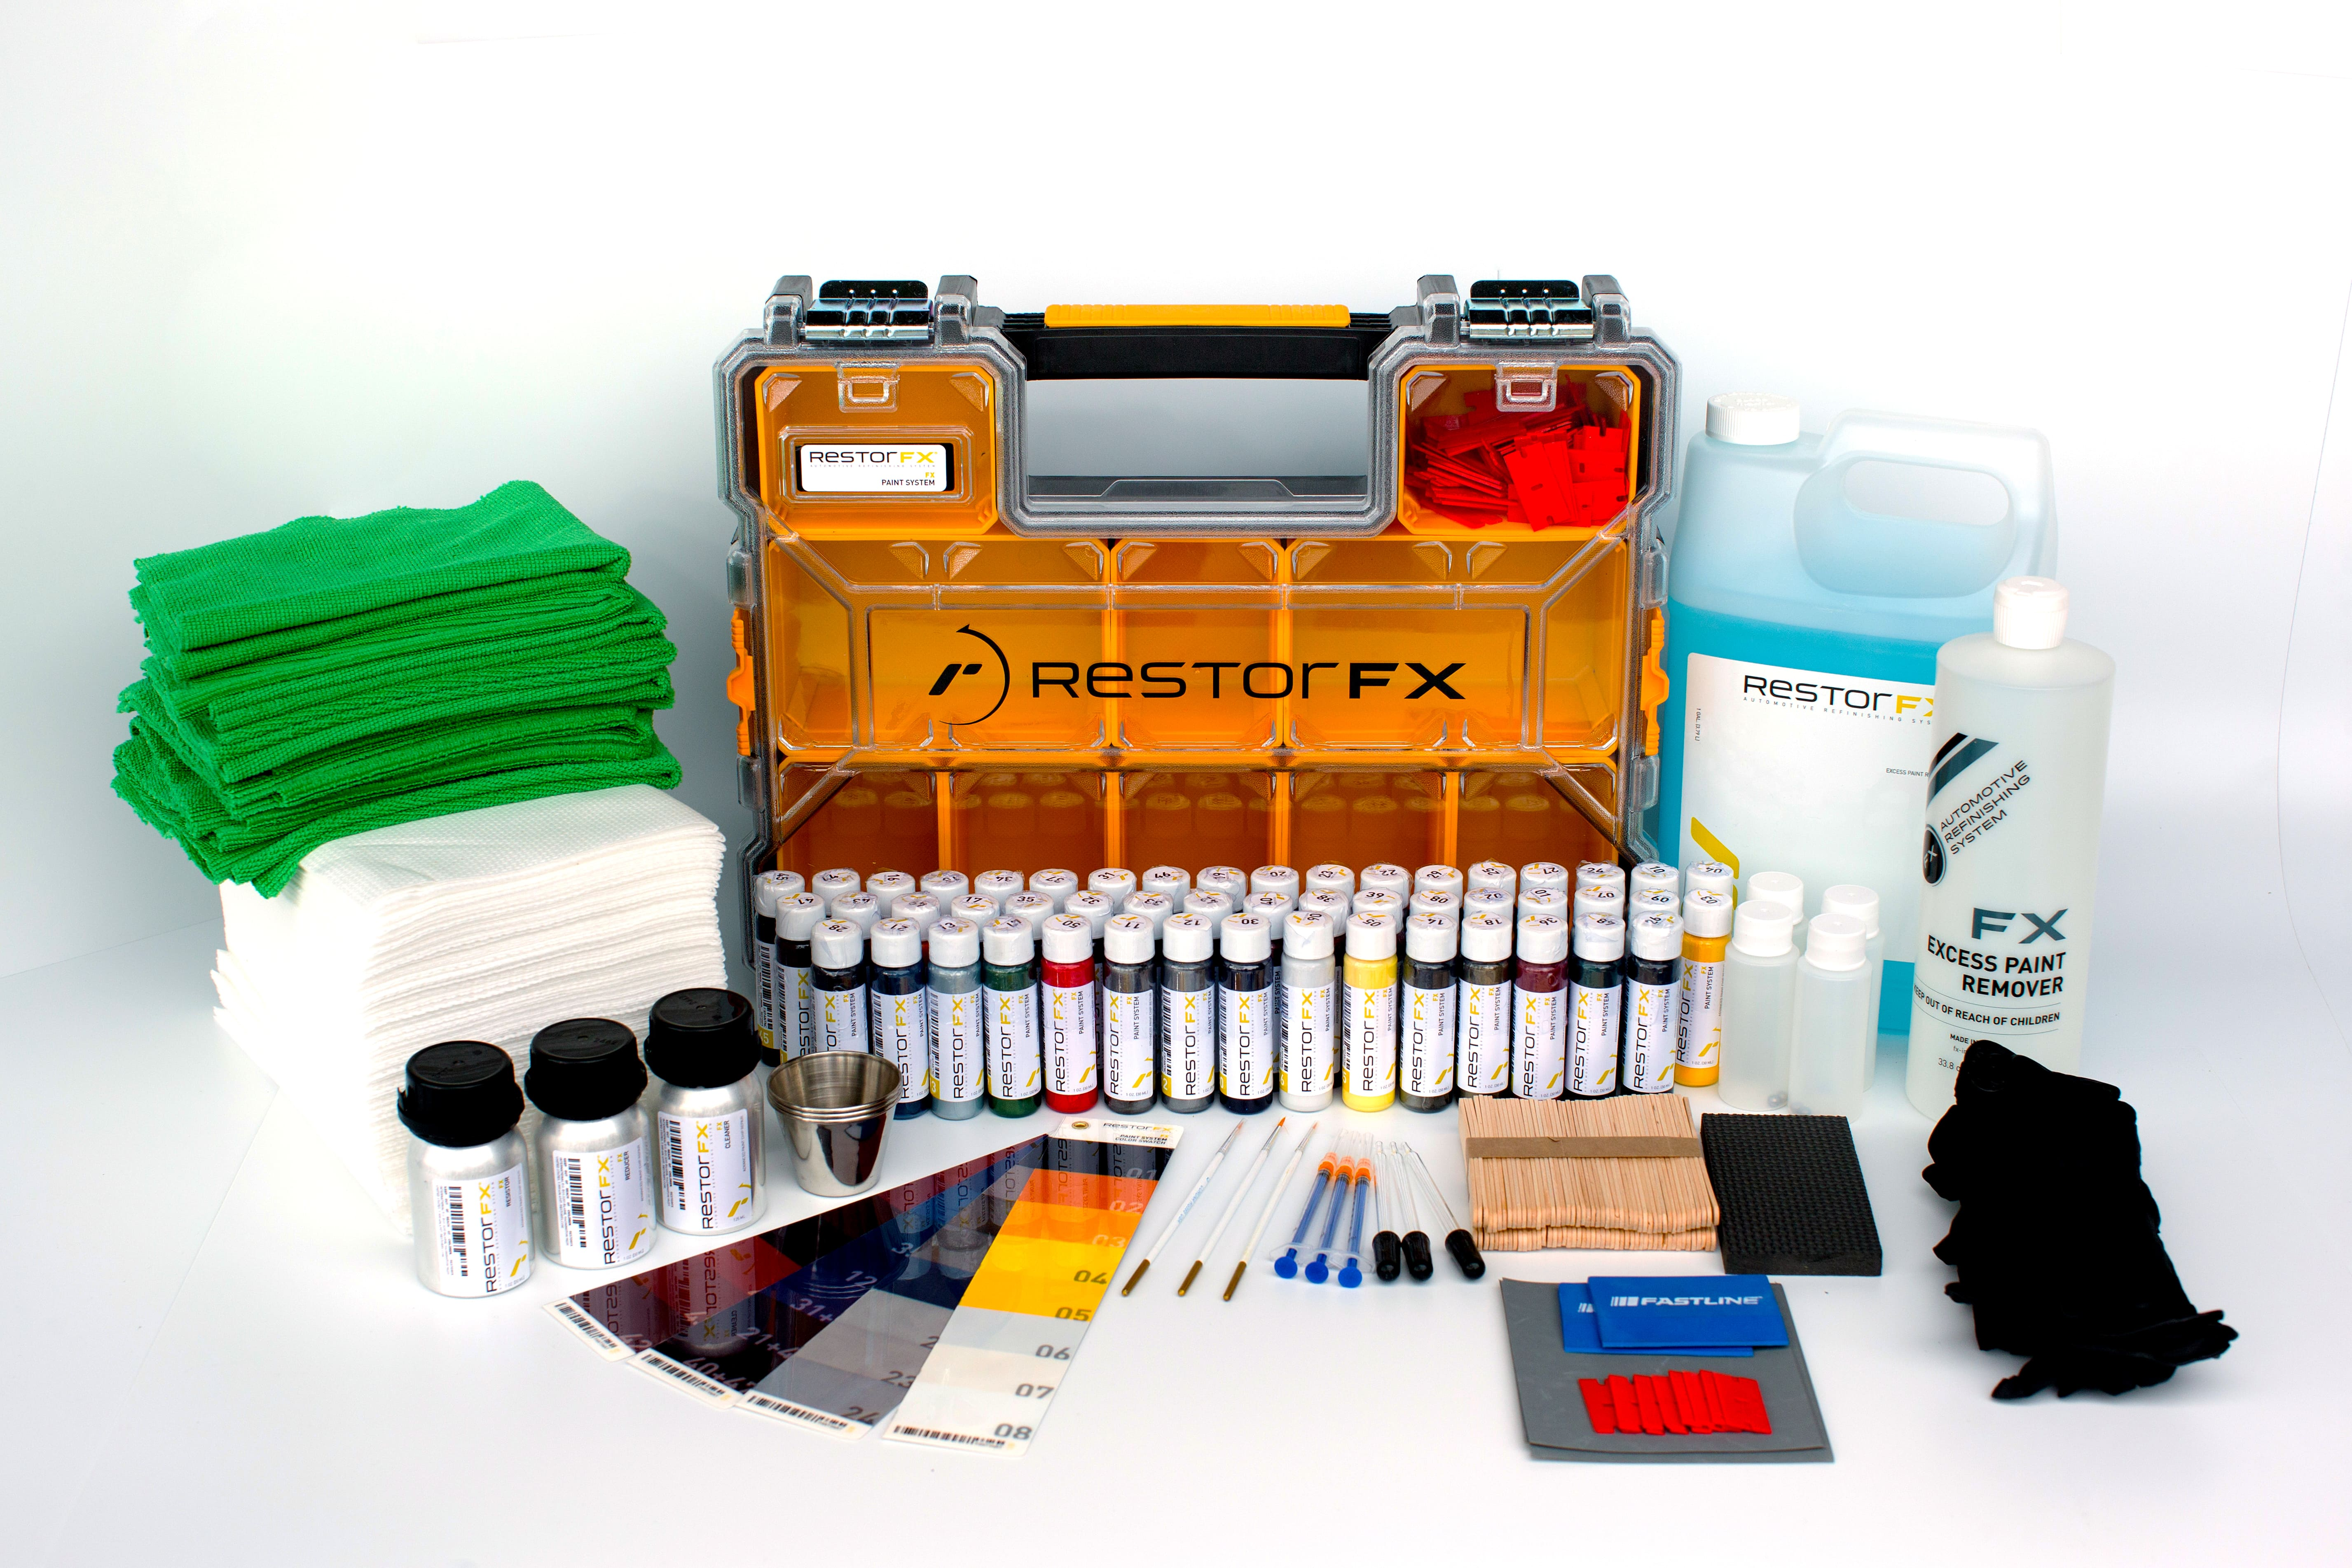 FX Paint System complete kit with paint vials, complementary liquids, manual, accessories, toolbox and more